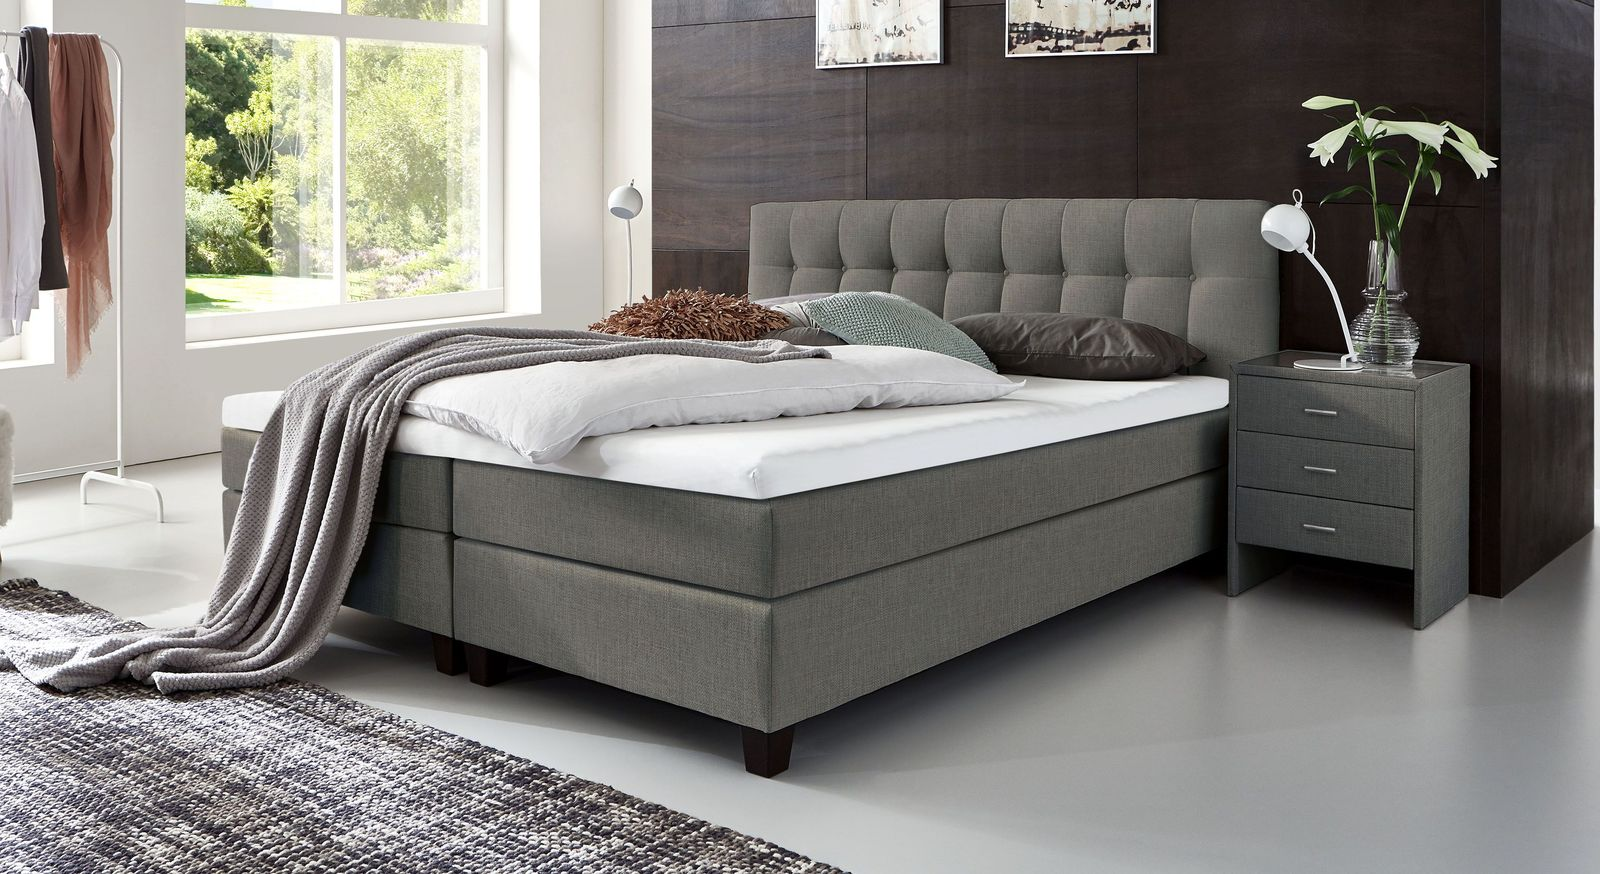 53 cm hohes Boxspringbett Luciano aus meliertem Webstoff in Grau